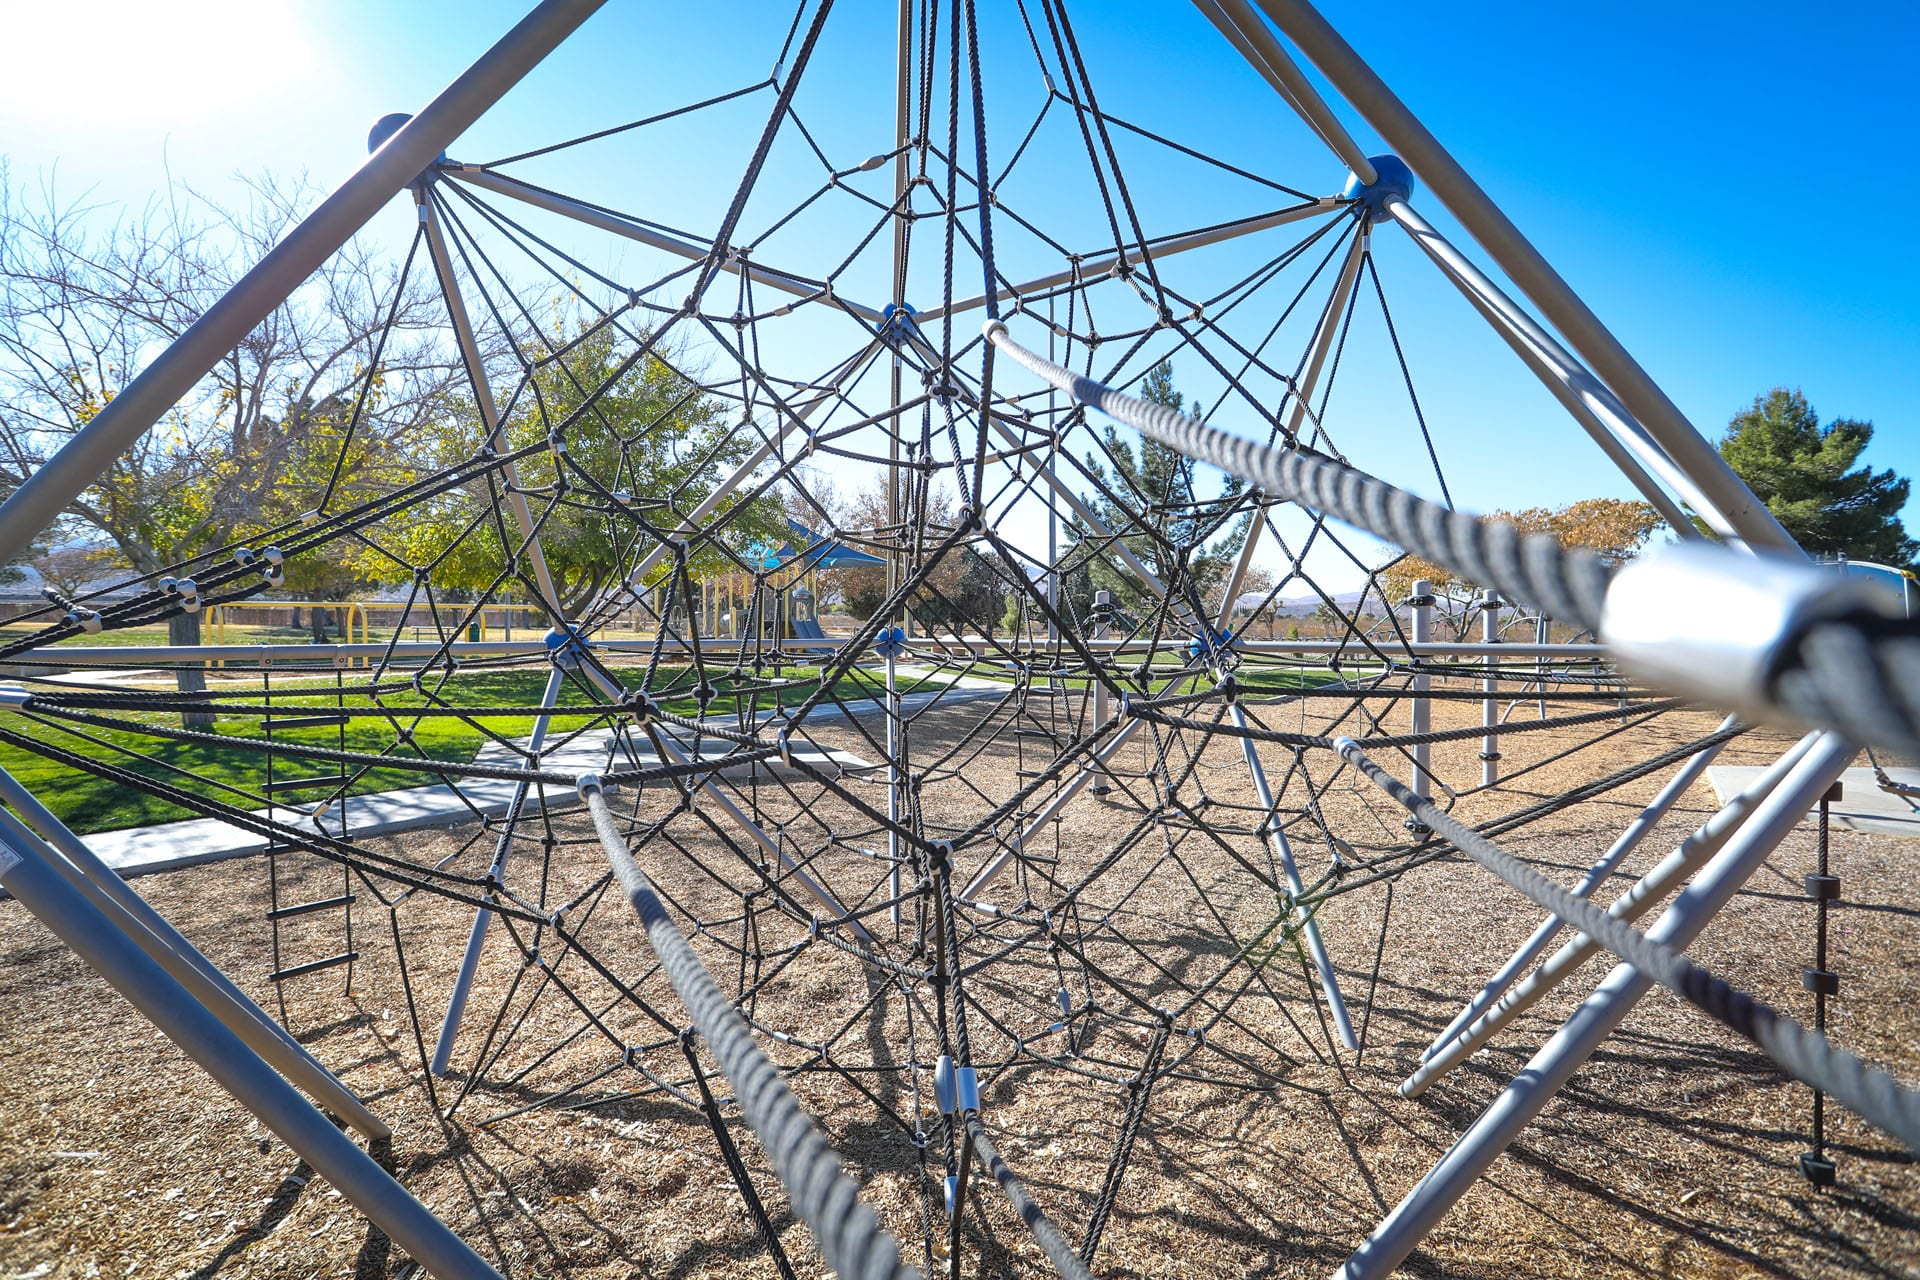 Jungle gym of ropes